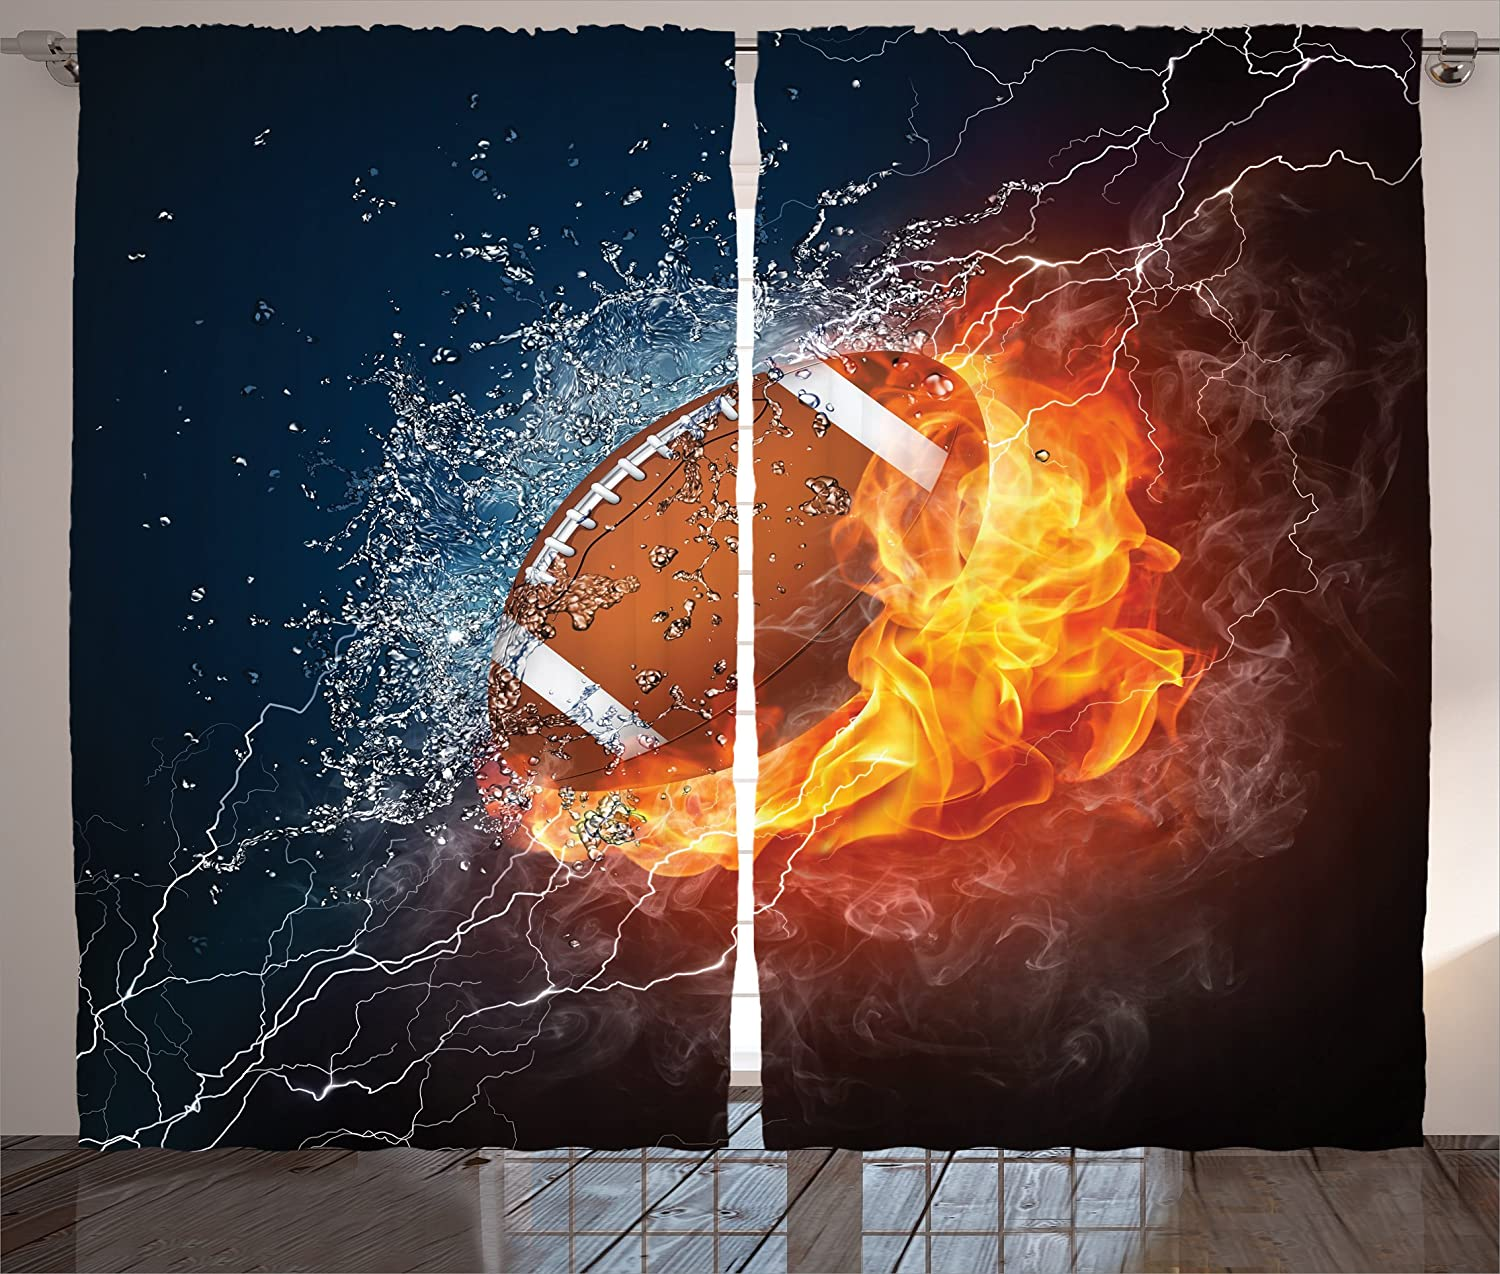 Ambesonne Sports Curtains, Football on Fire and Water Flame Splashing Thunder Bolt Abstract Conceptual Art, Living Room Bedroom Window Drapes 2 Panel Set, 108